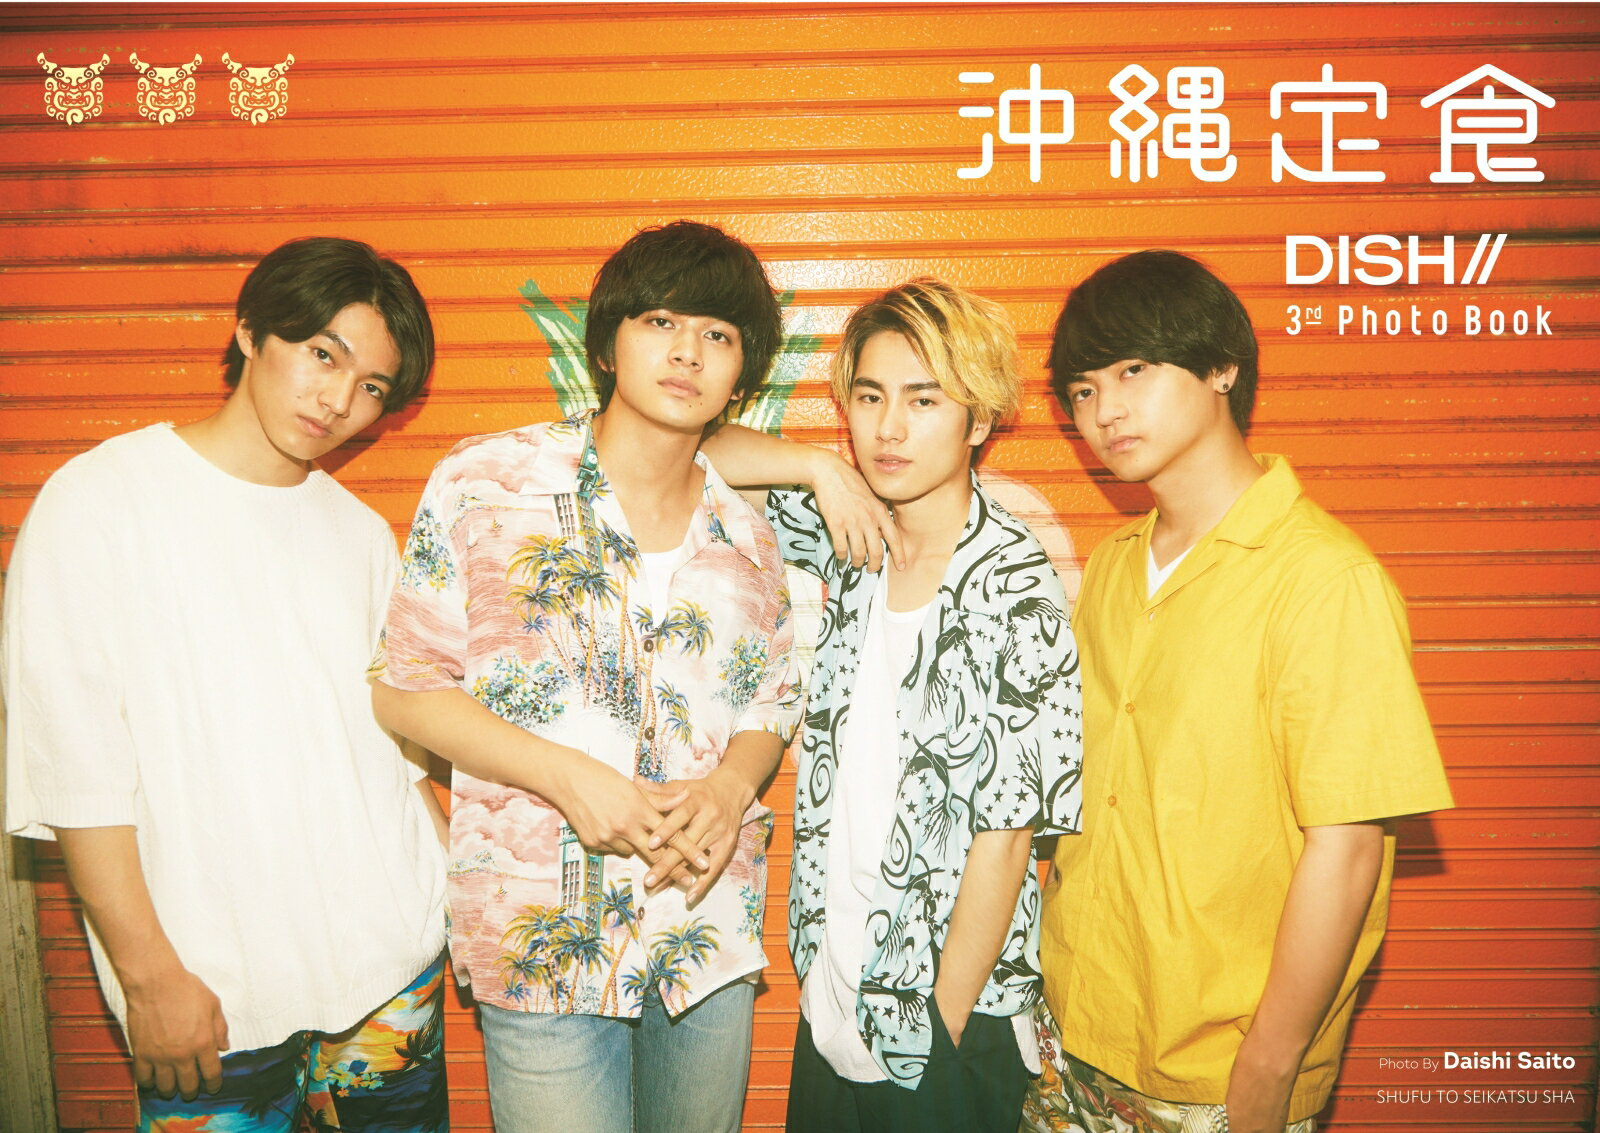 DISH// 3rd Photo Book 沖縄定食